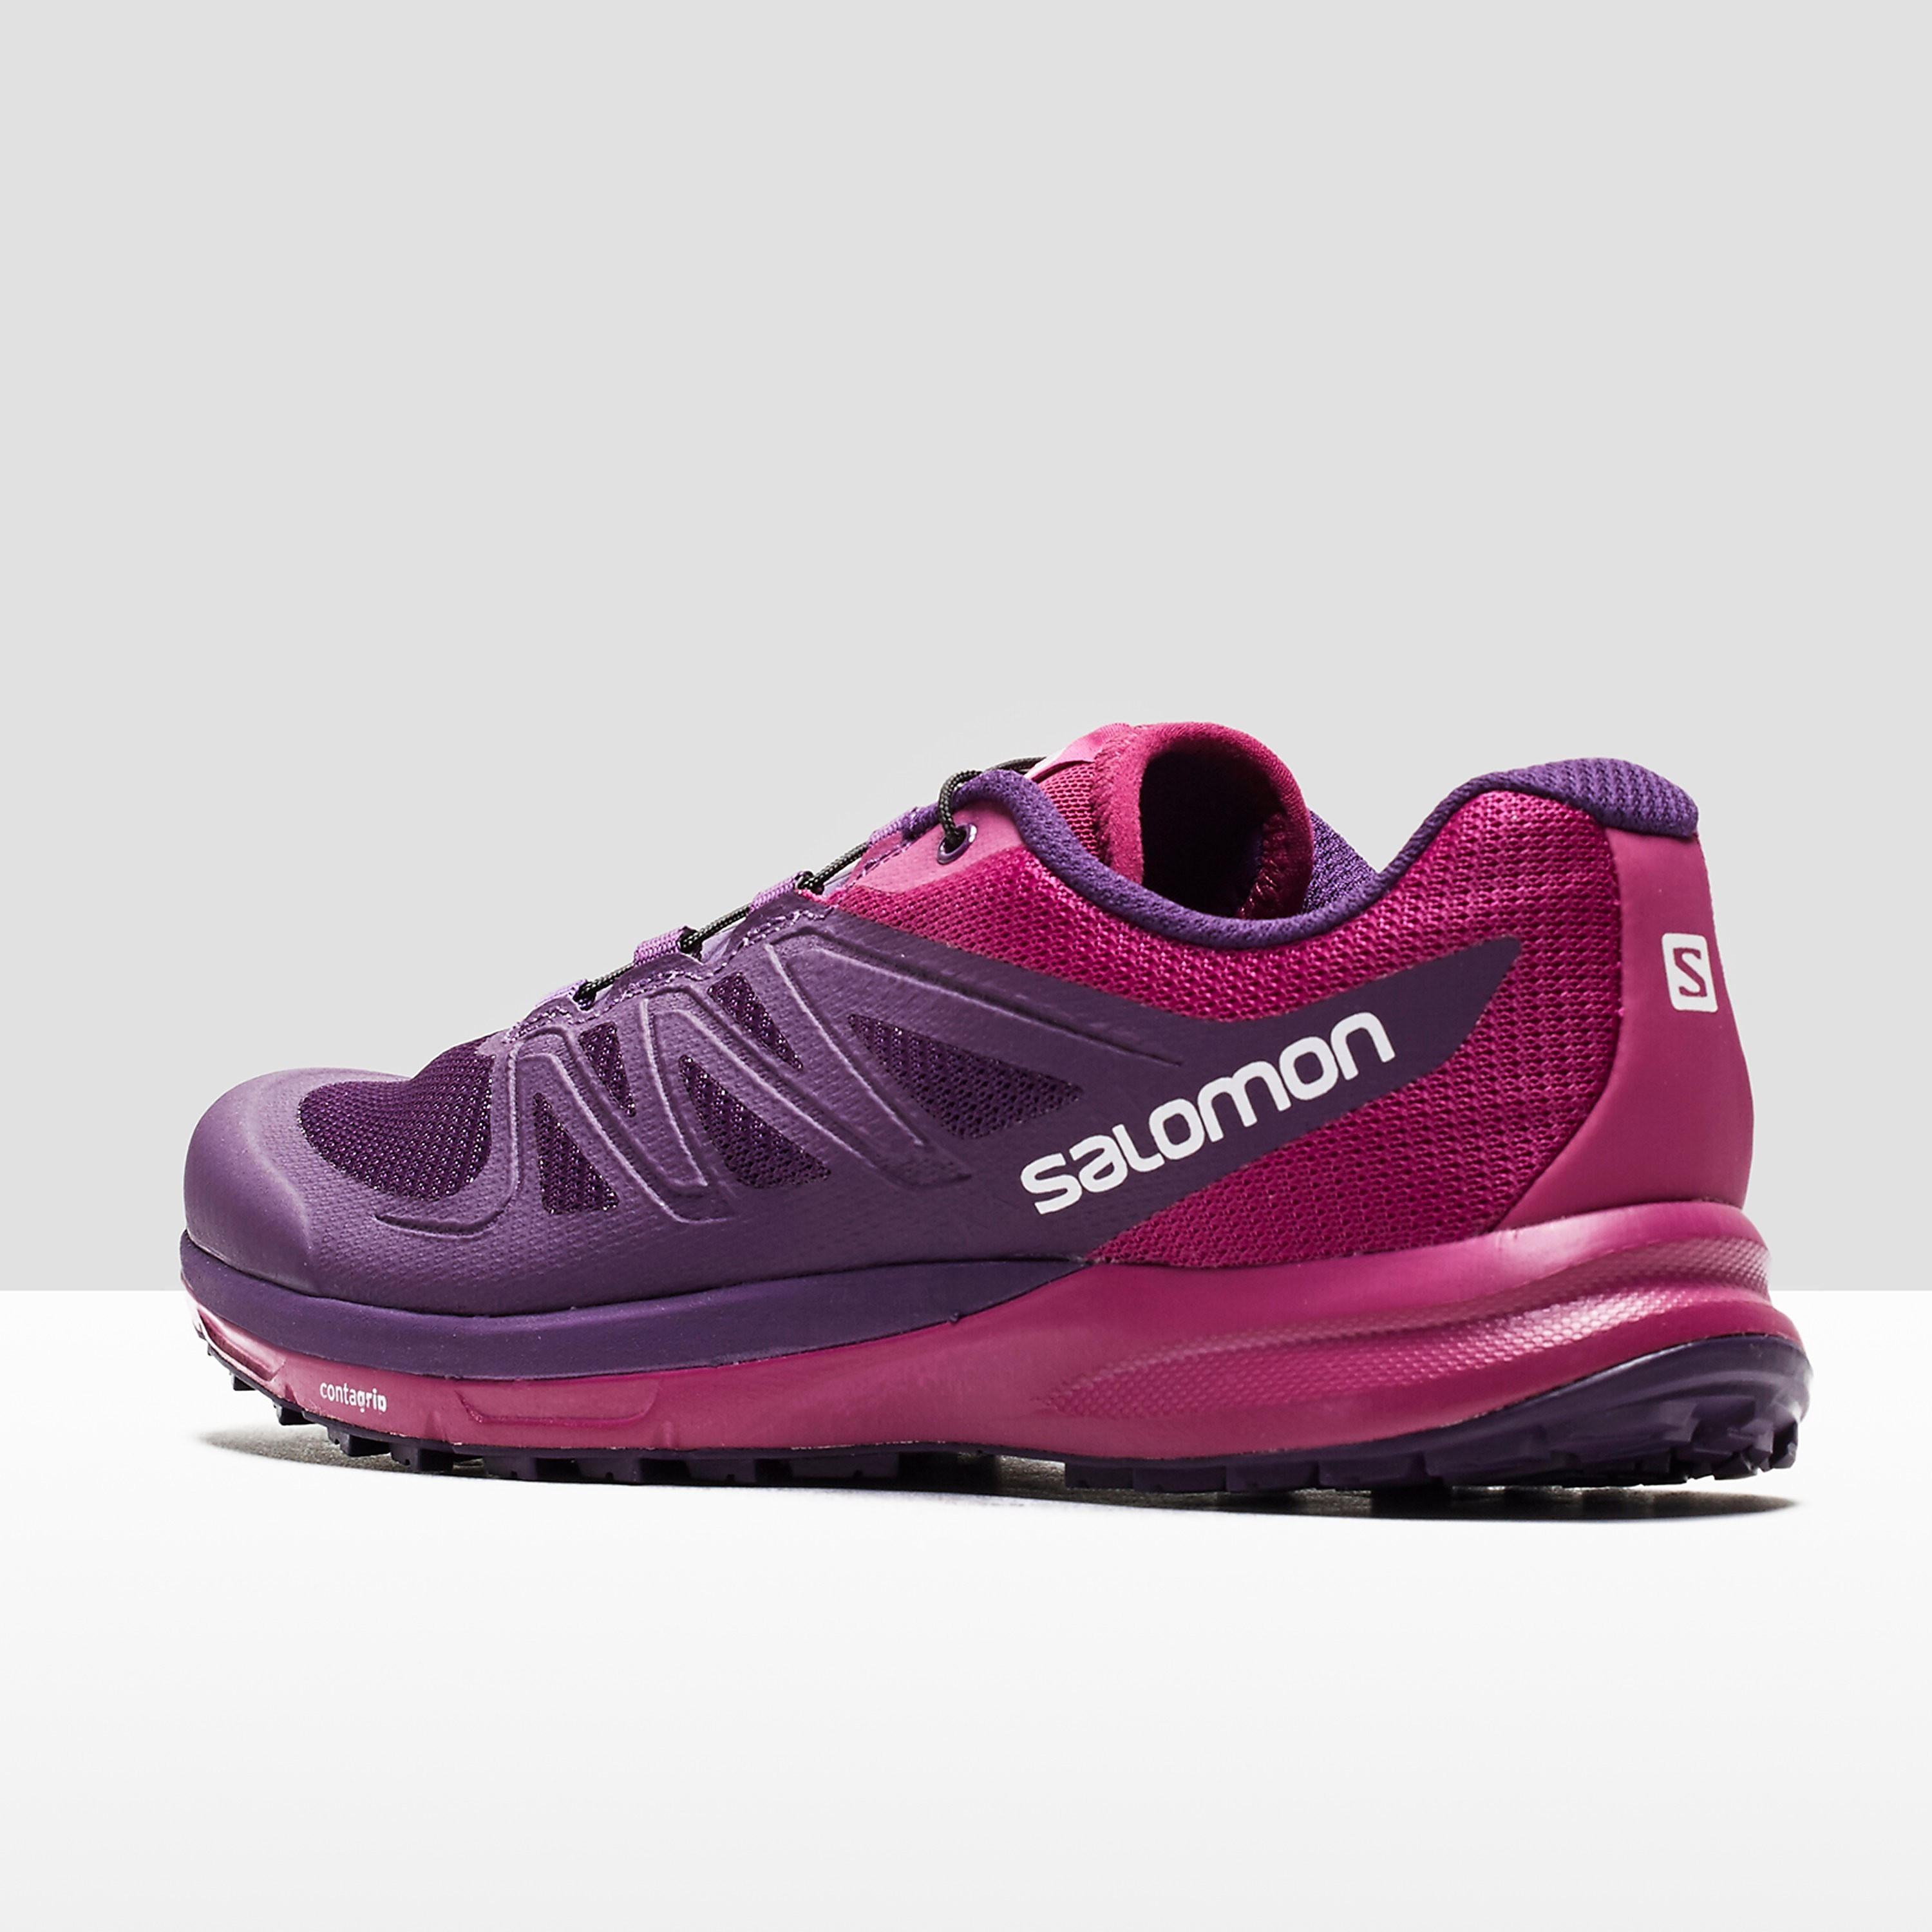 Salomon SENSE PRO 3 Ladies Trail Running Shoe